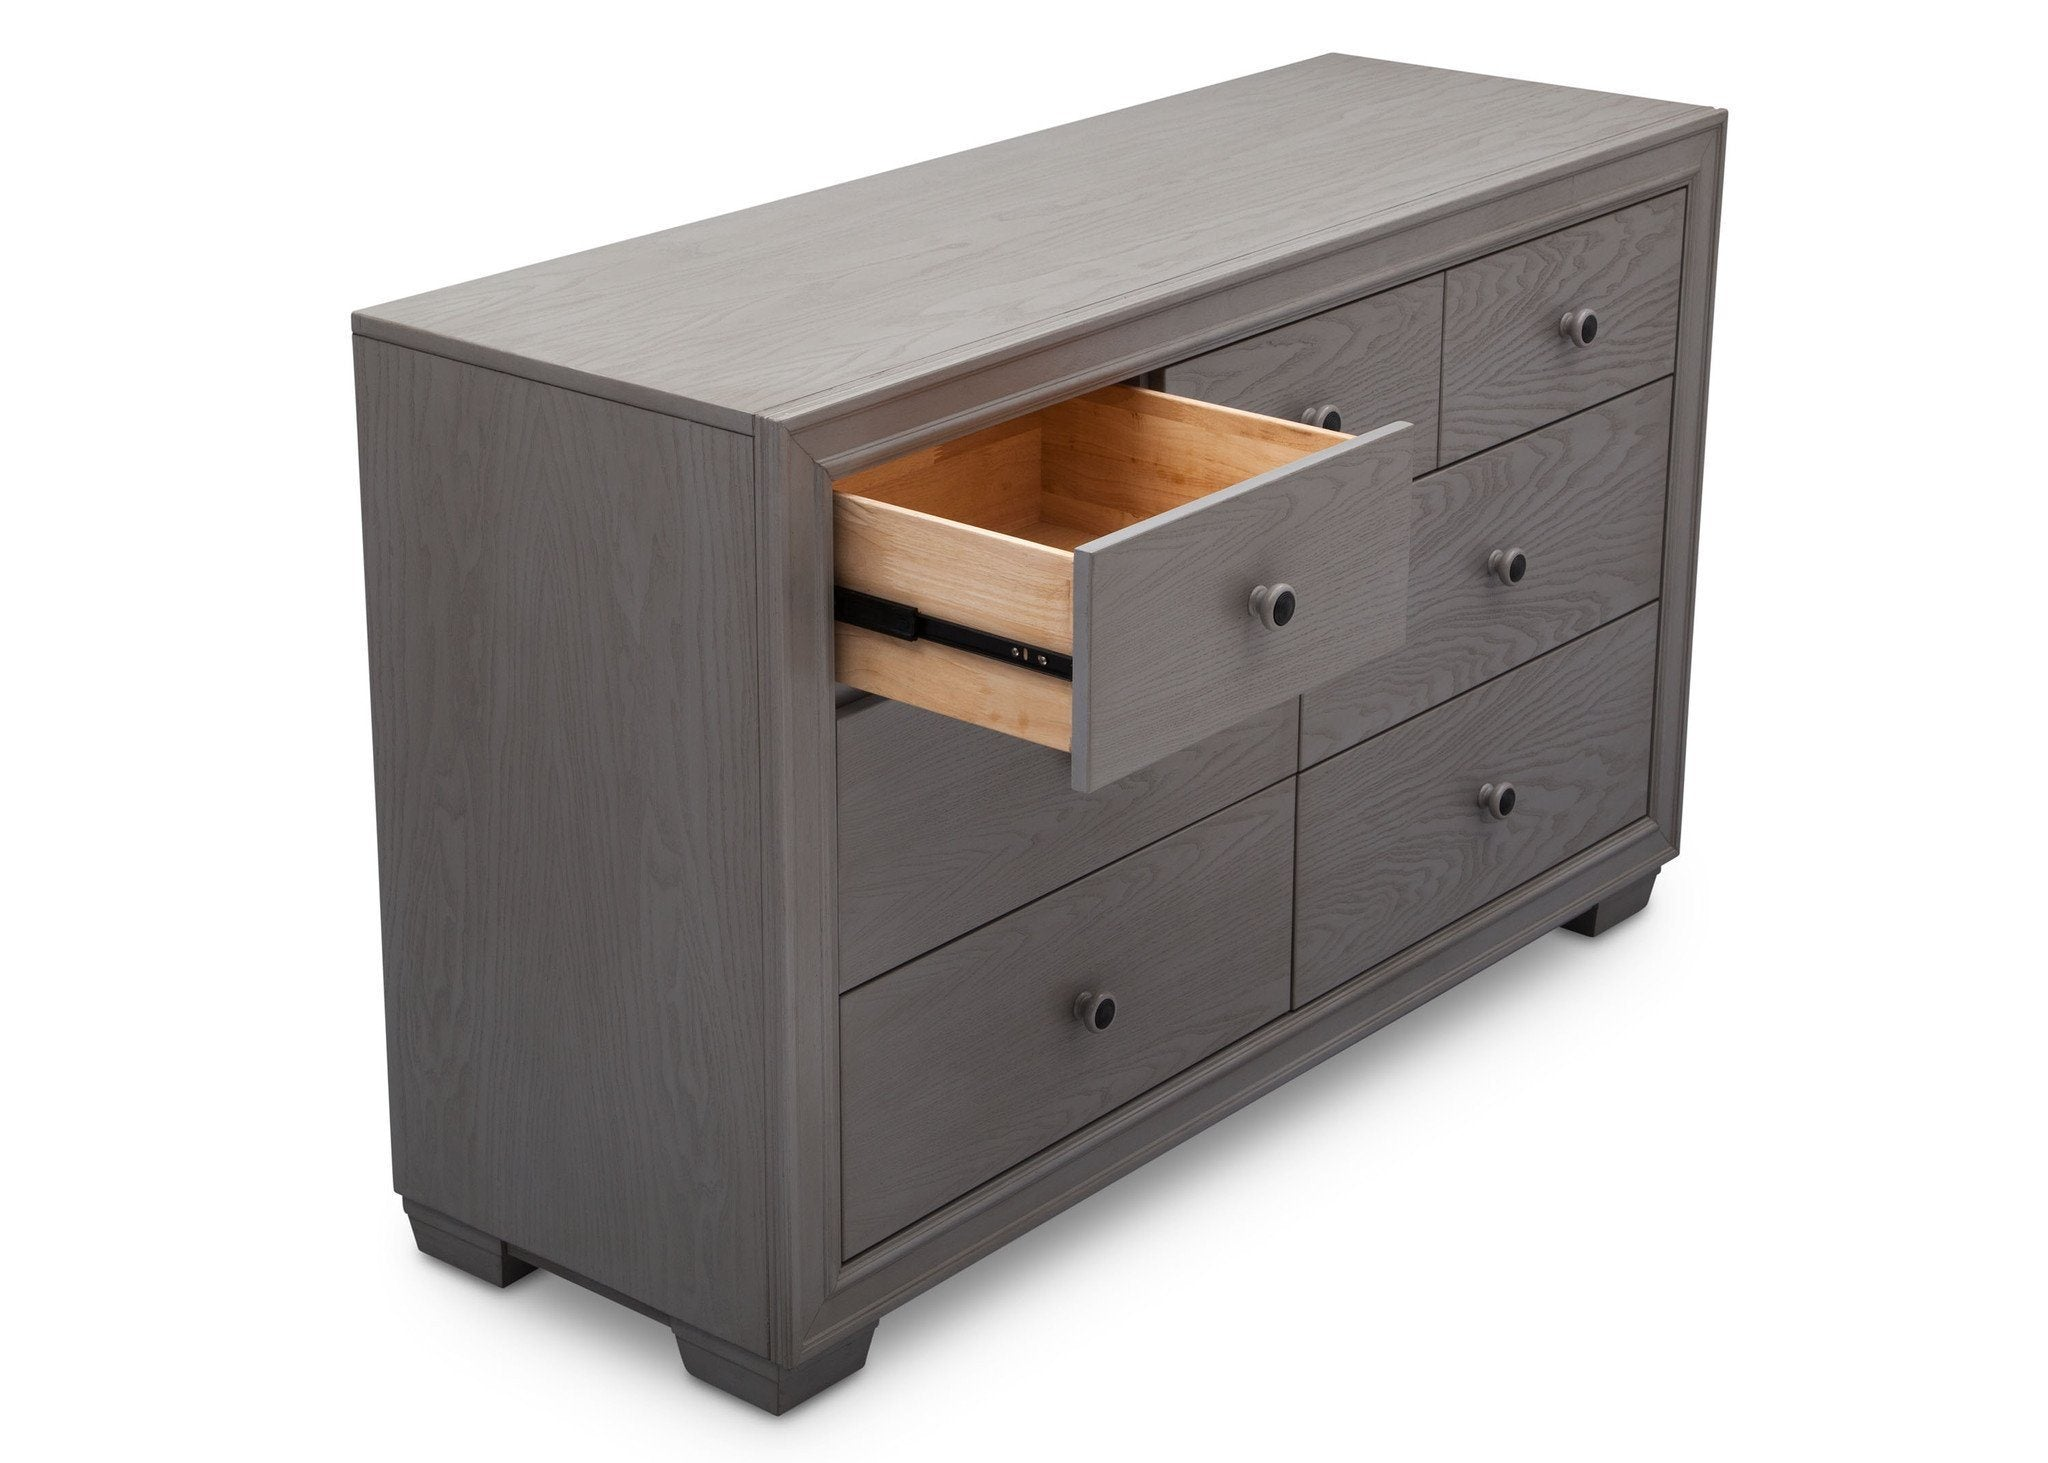 Simmons Kids Storm (161) Ravello 7 Drawer Dresser, Detail View, b4b